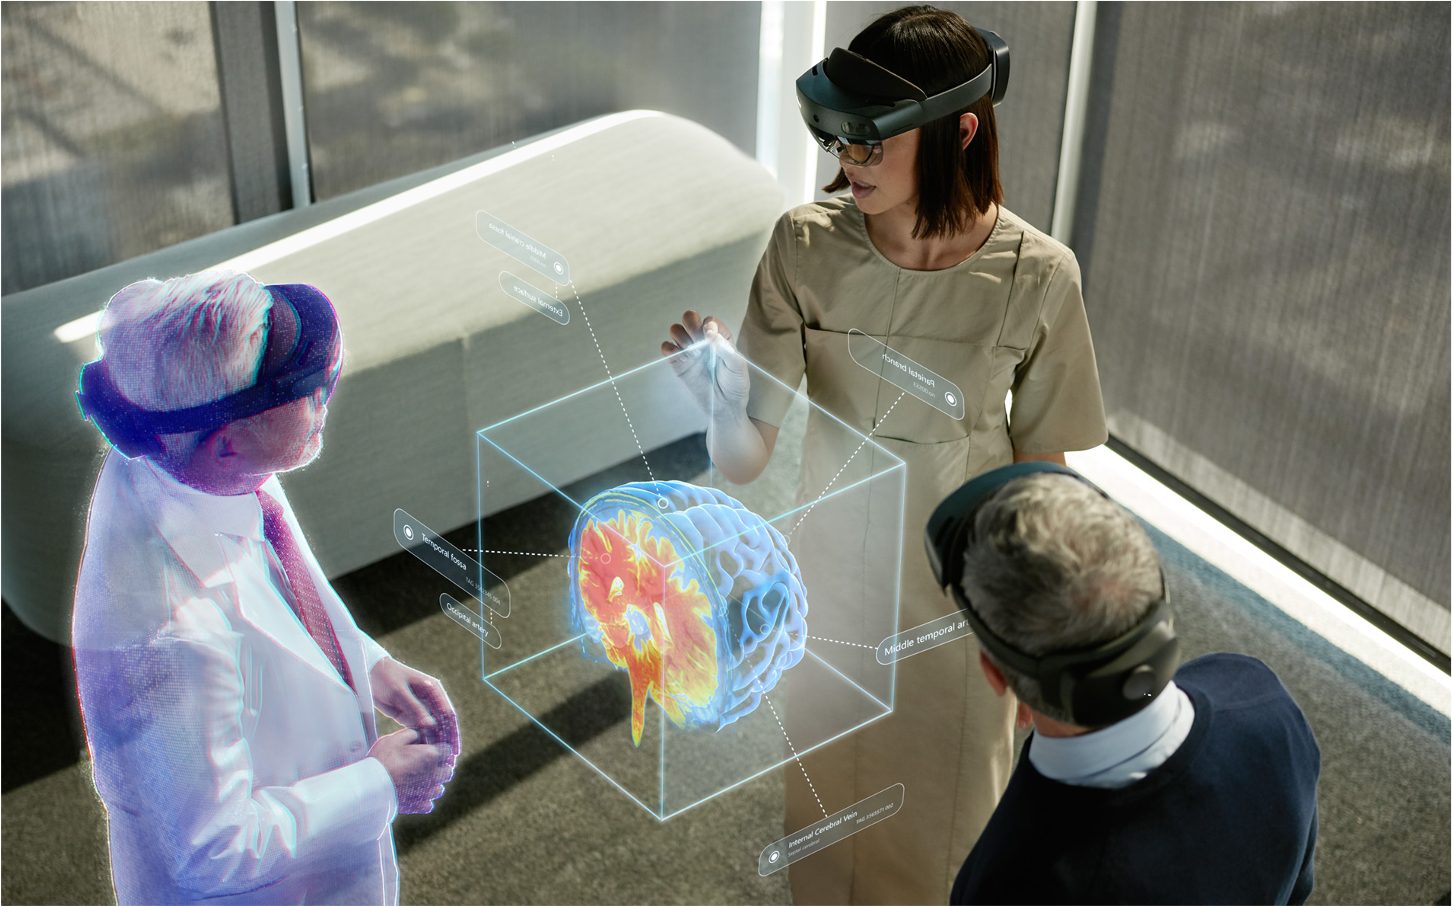 An image of people using HoloLens to collaborate.